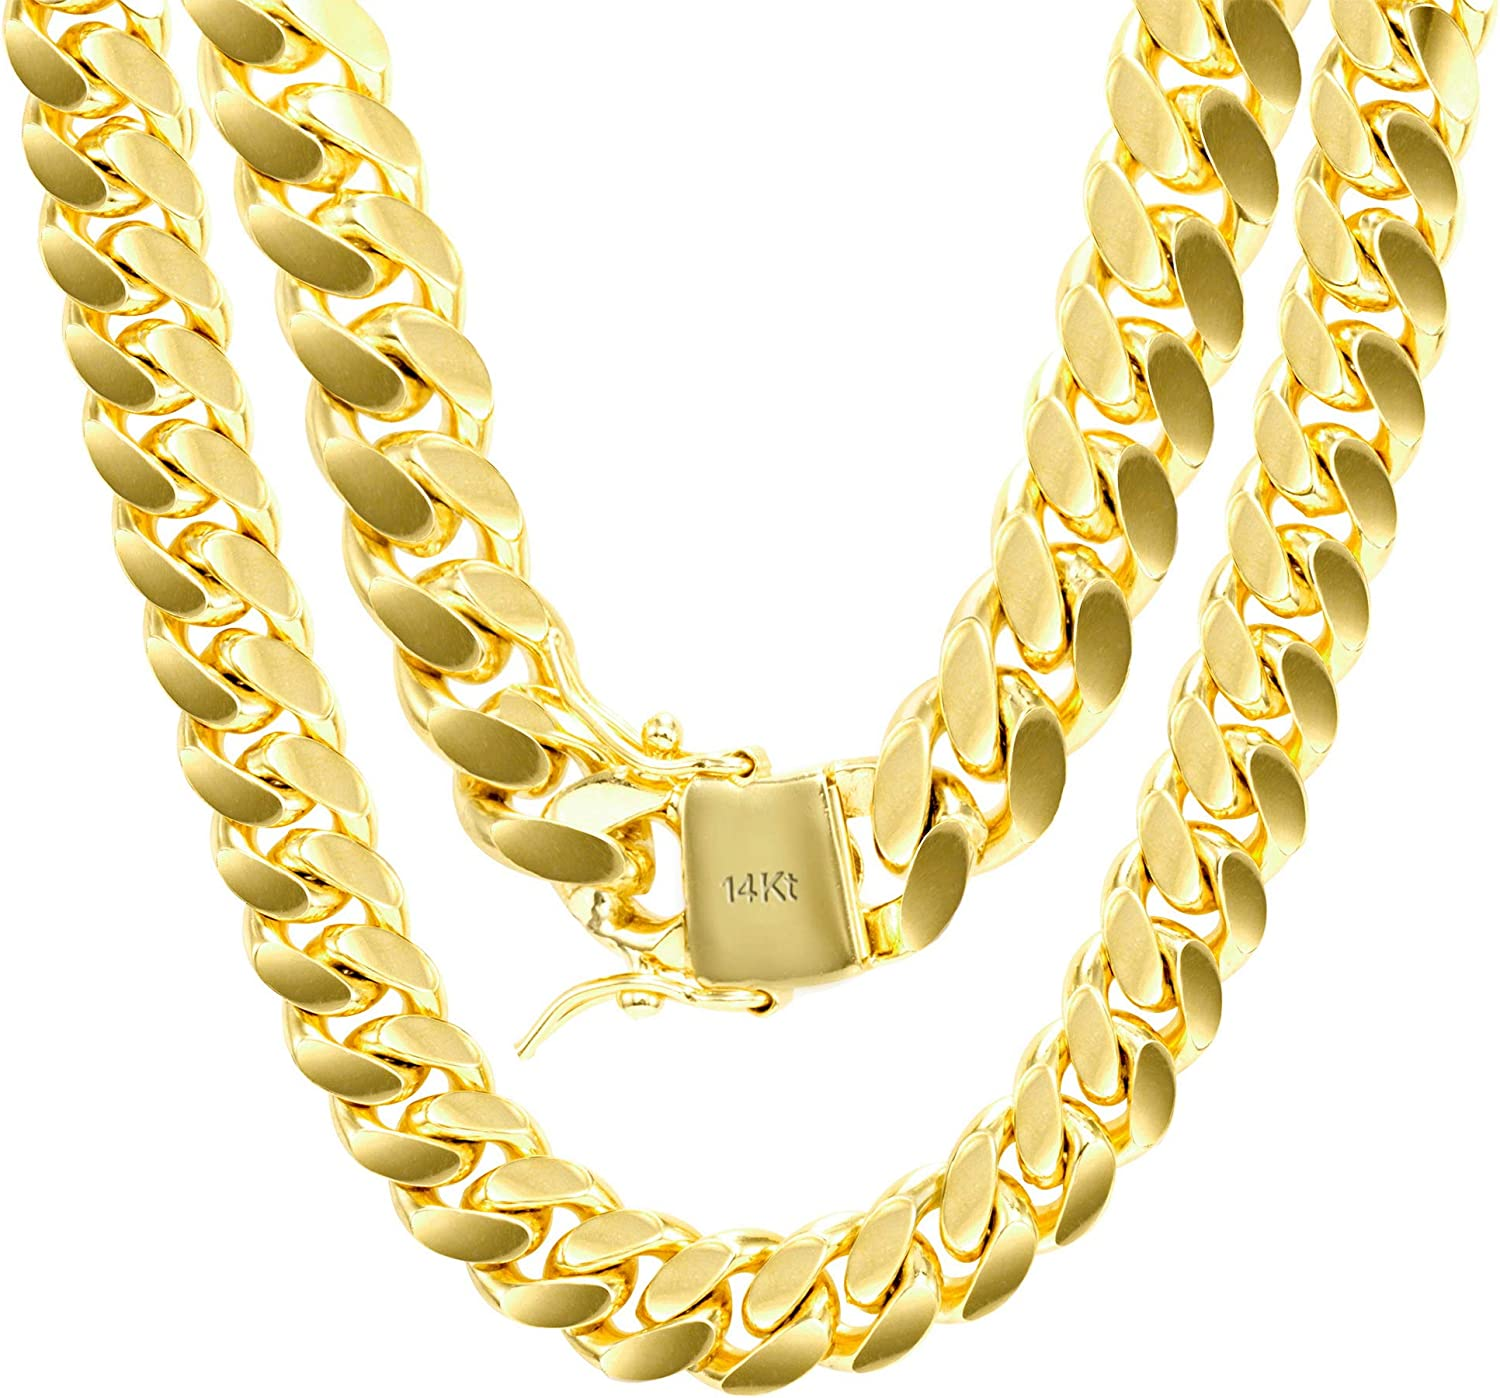 Cross Charm Gold Plated Piece Pendant Cuban Chain Necklace Jewelry 011